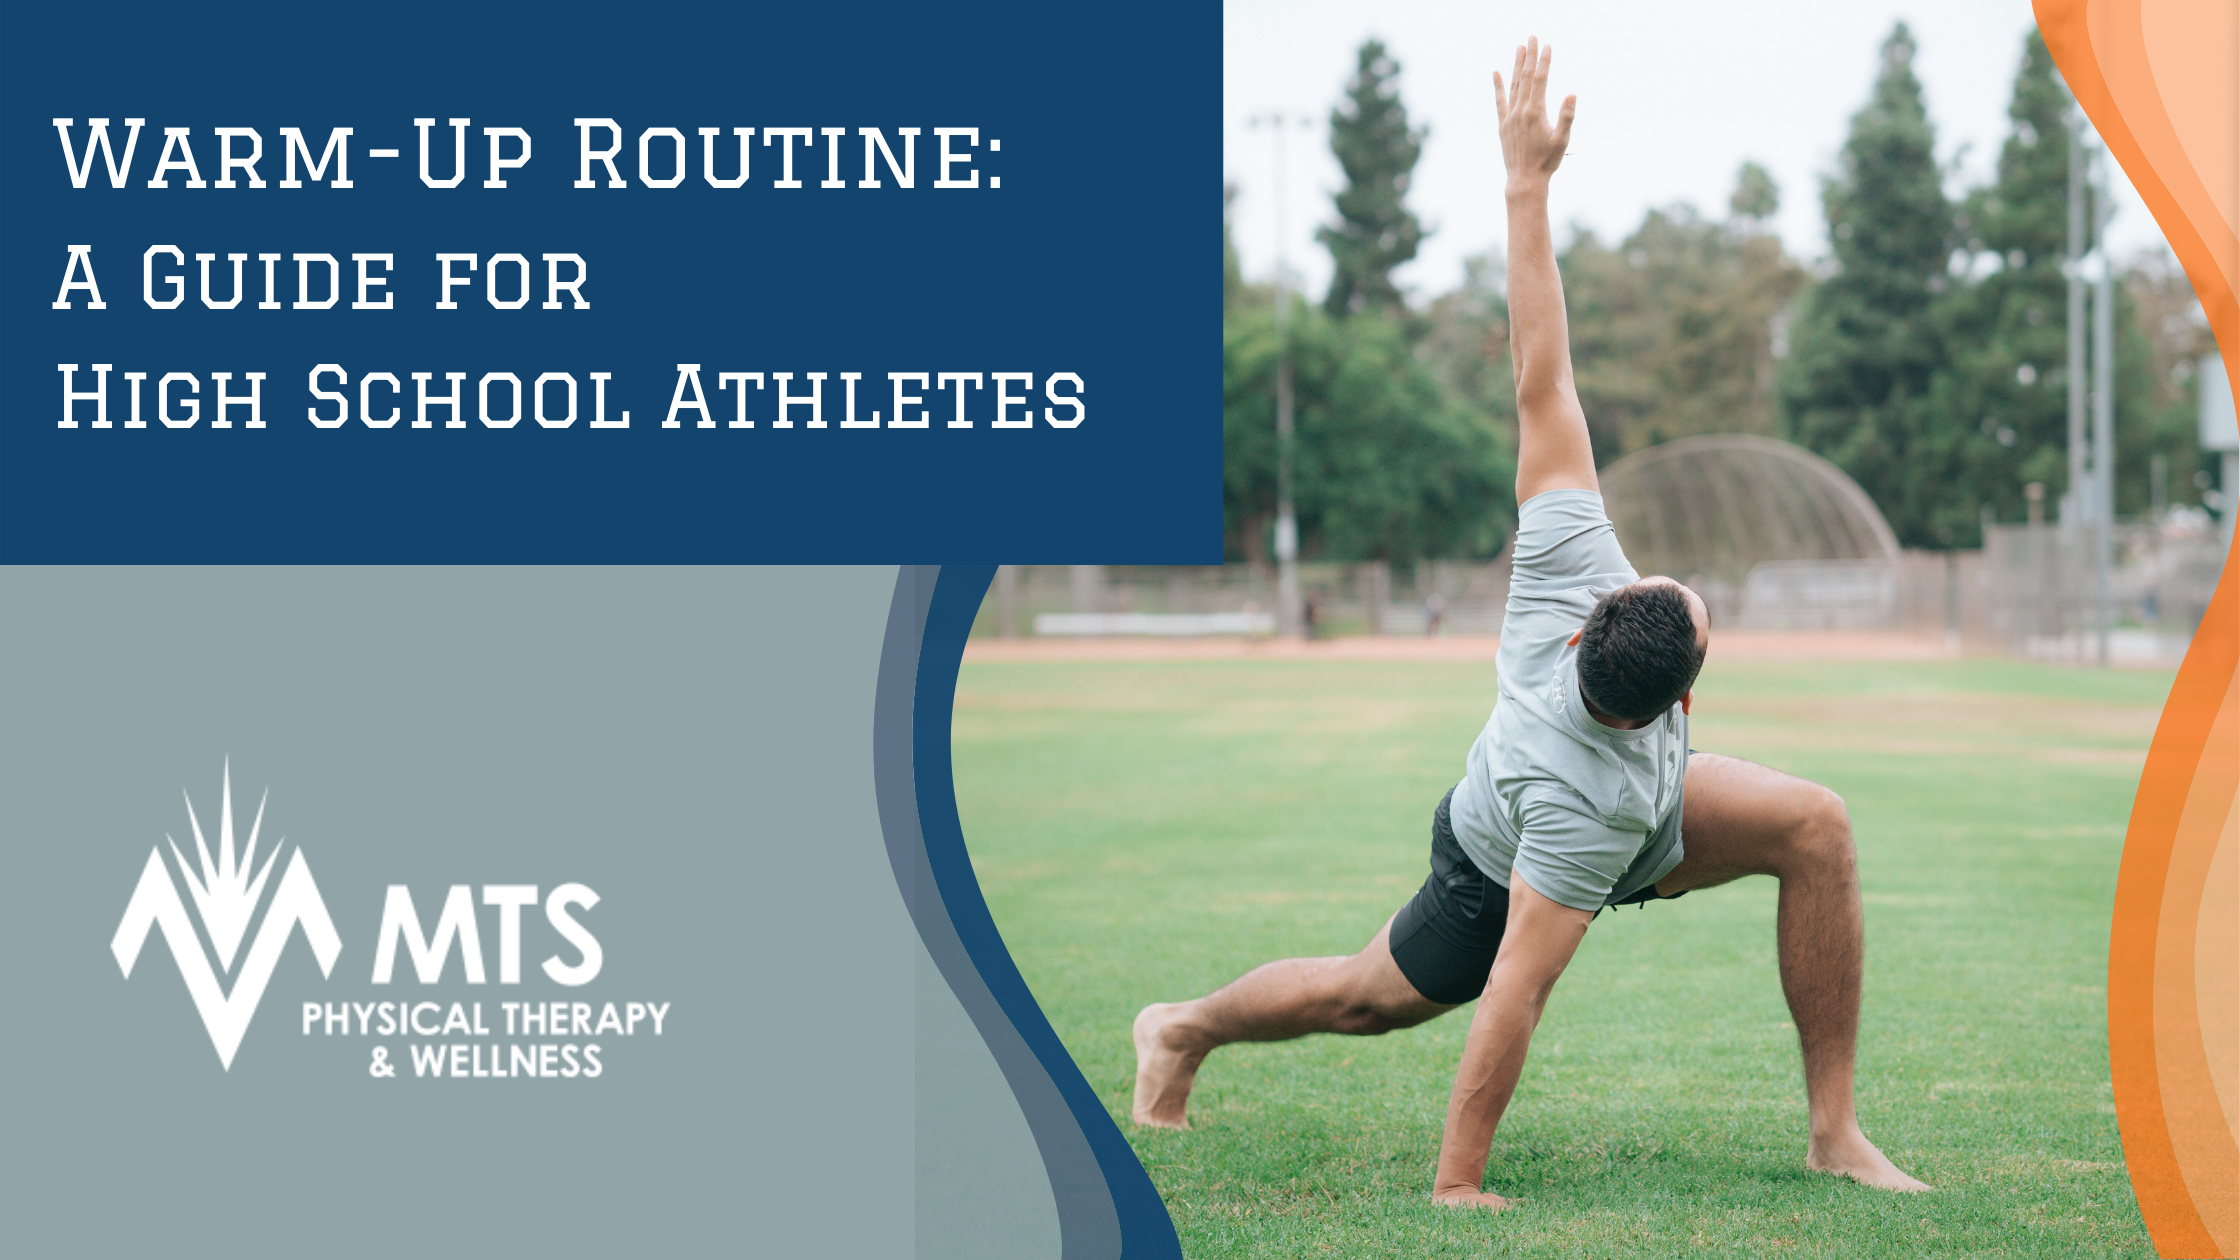 Warm-Up Routine: A Guide for High School Athletes